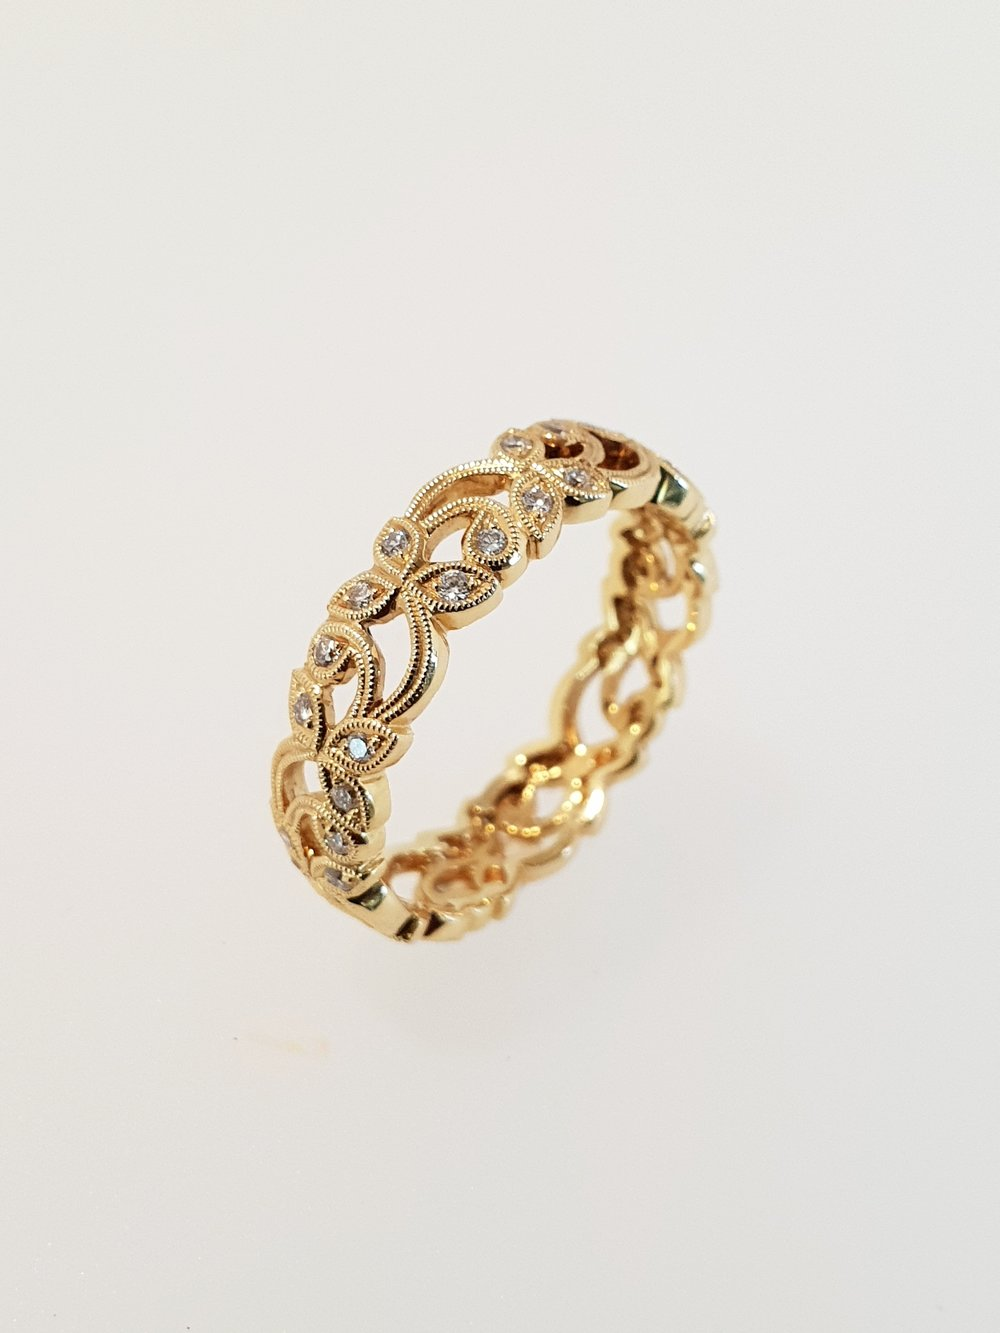 18ct Yellow Gold & Diamond Ring, .28ct